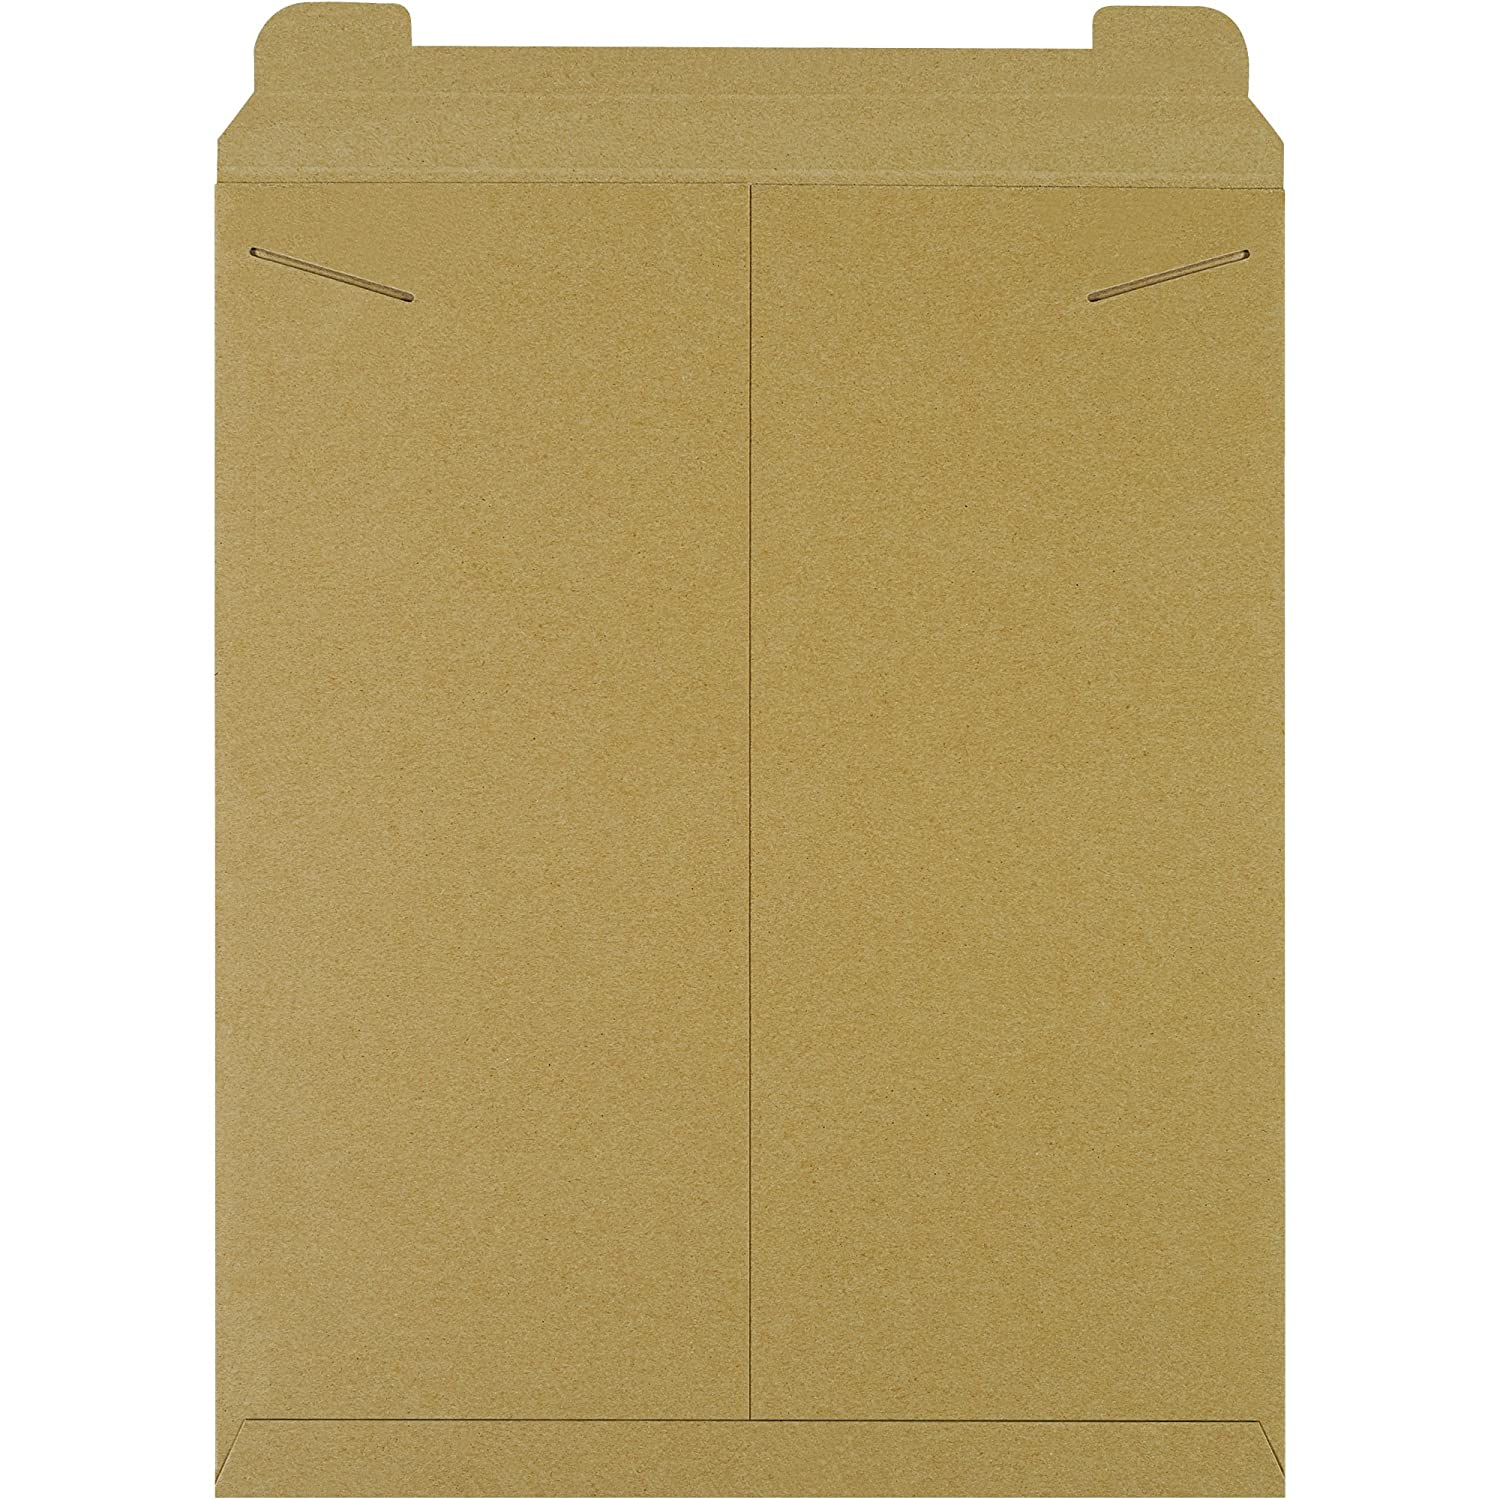 Ship Now Supply SNRM7 Flat Mailers Le x 21